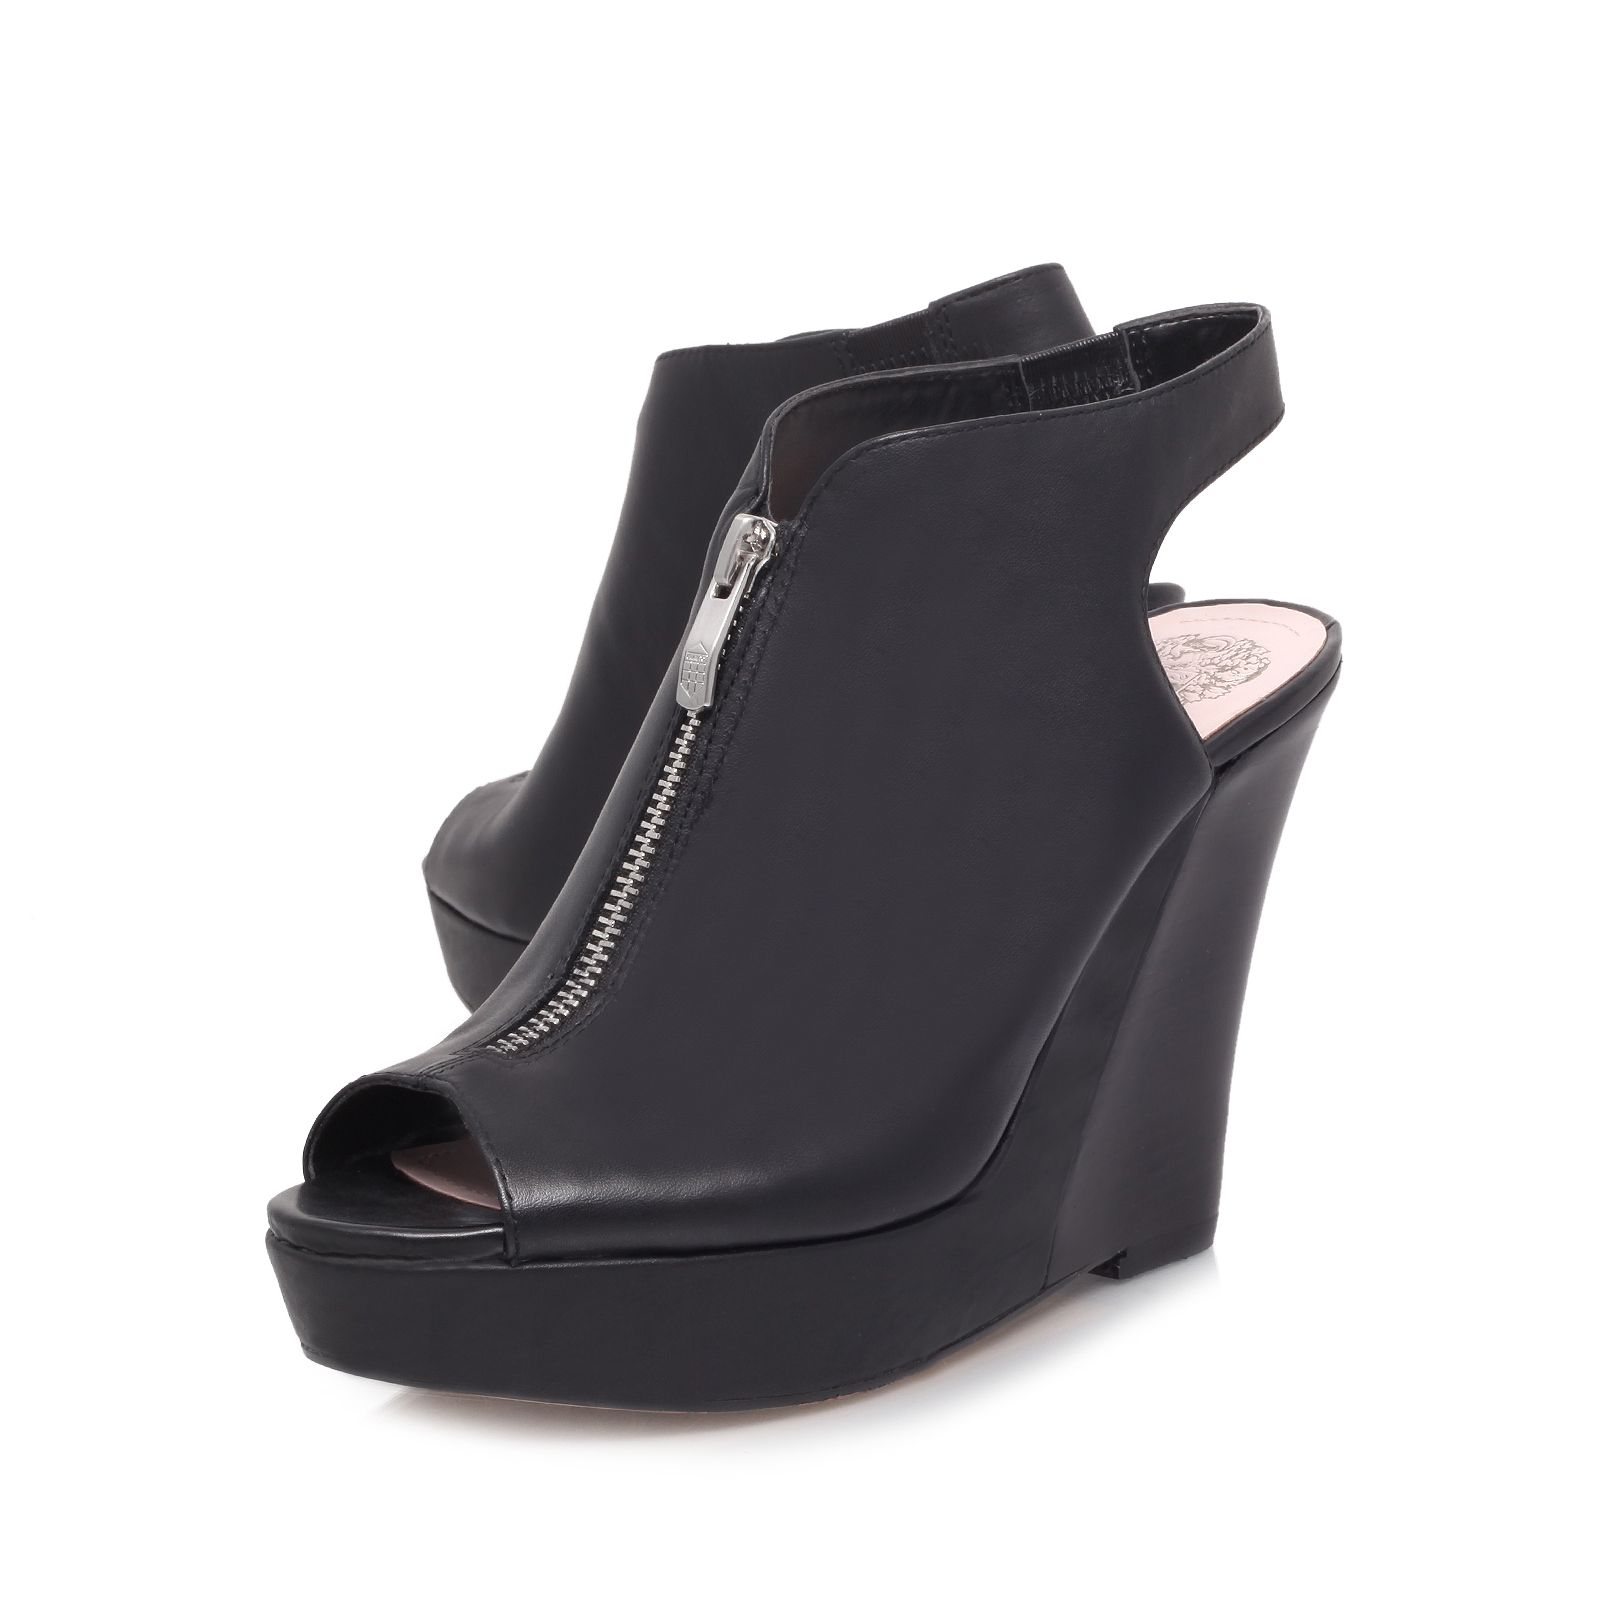 Wenzele heeled wedges